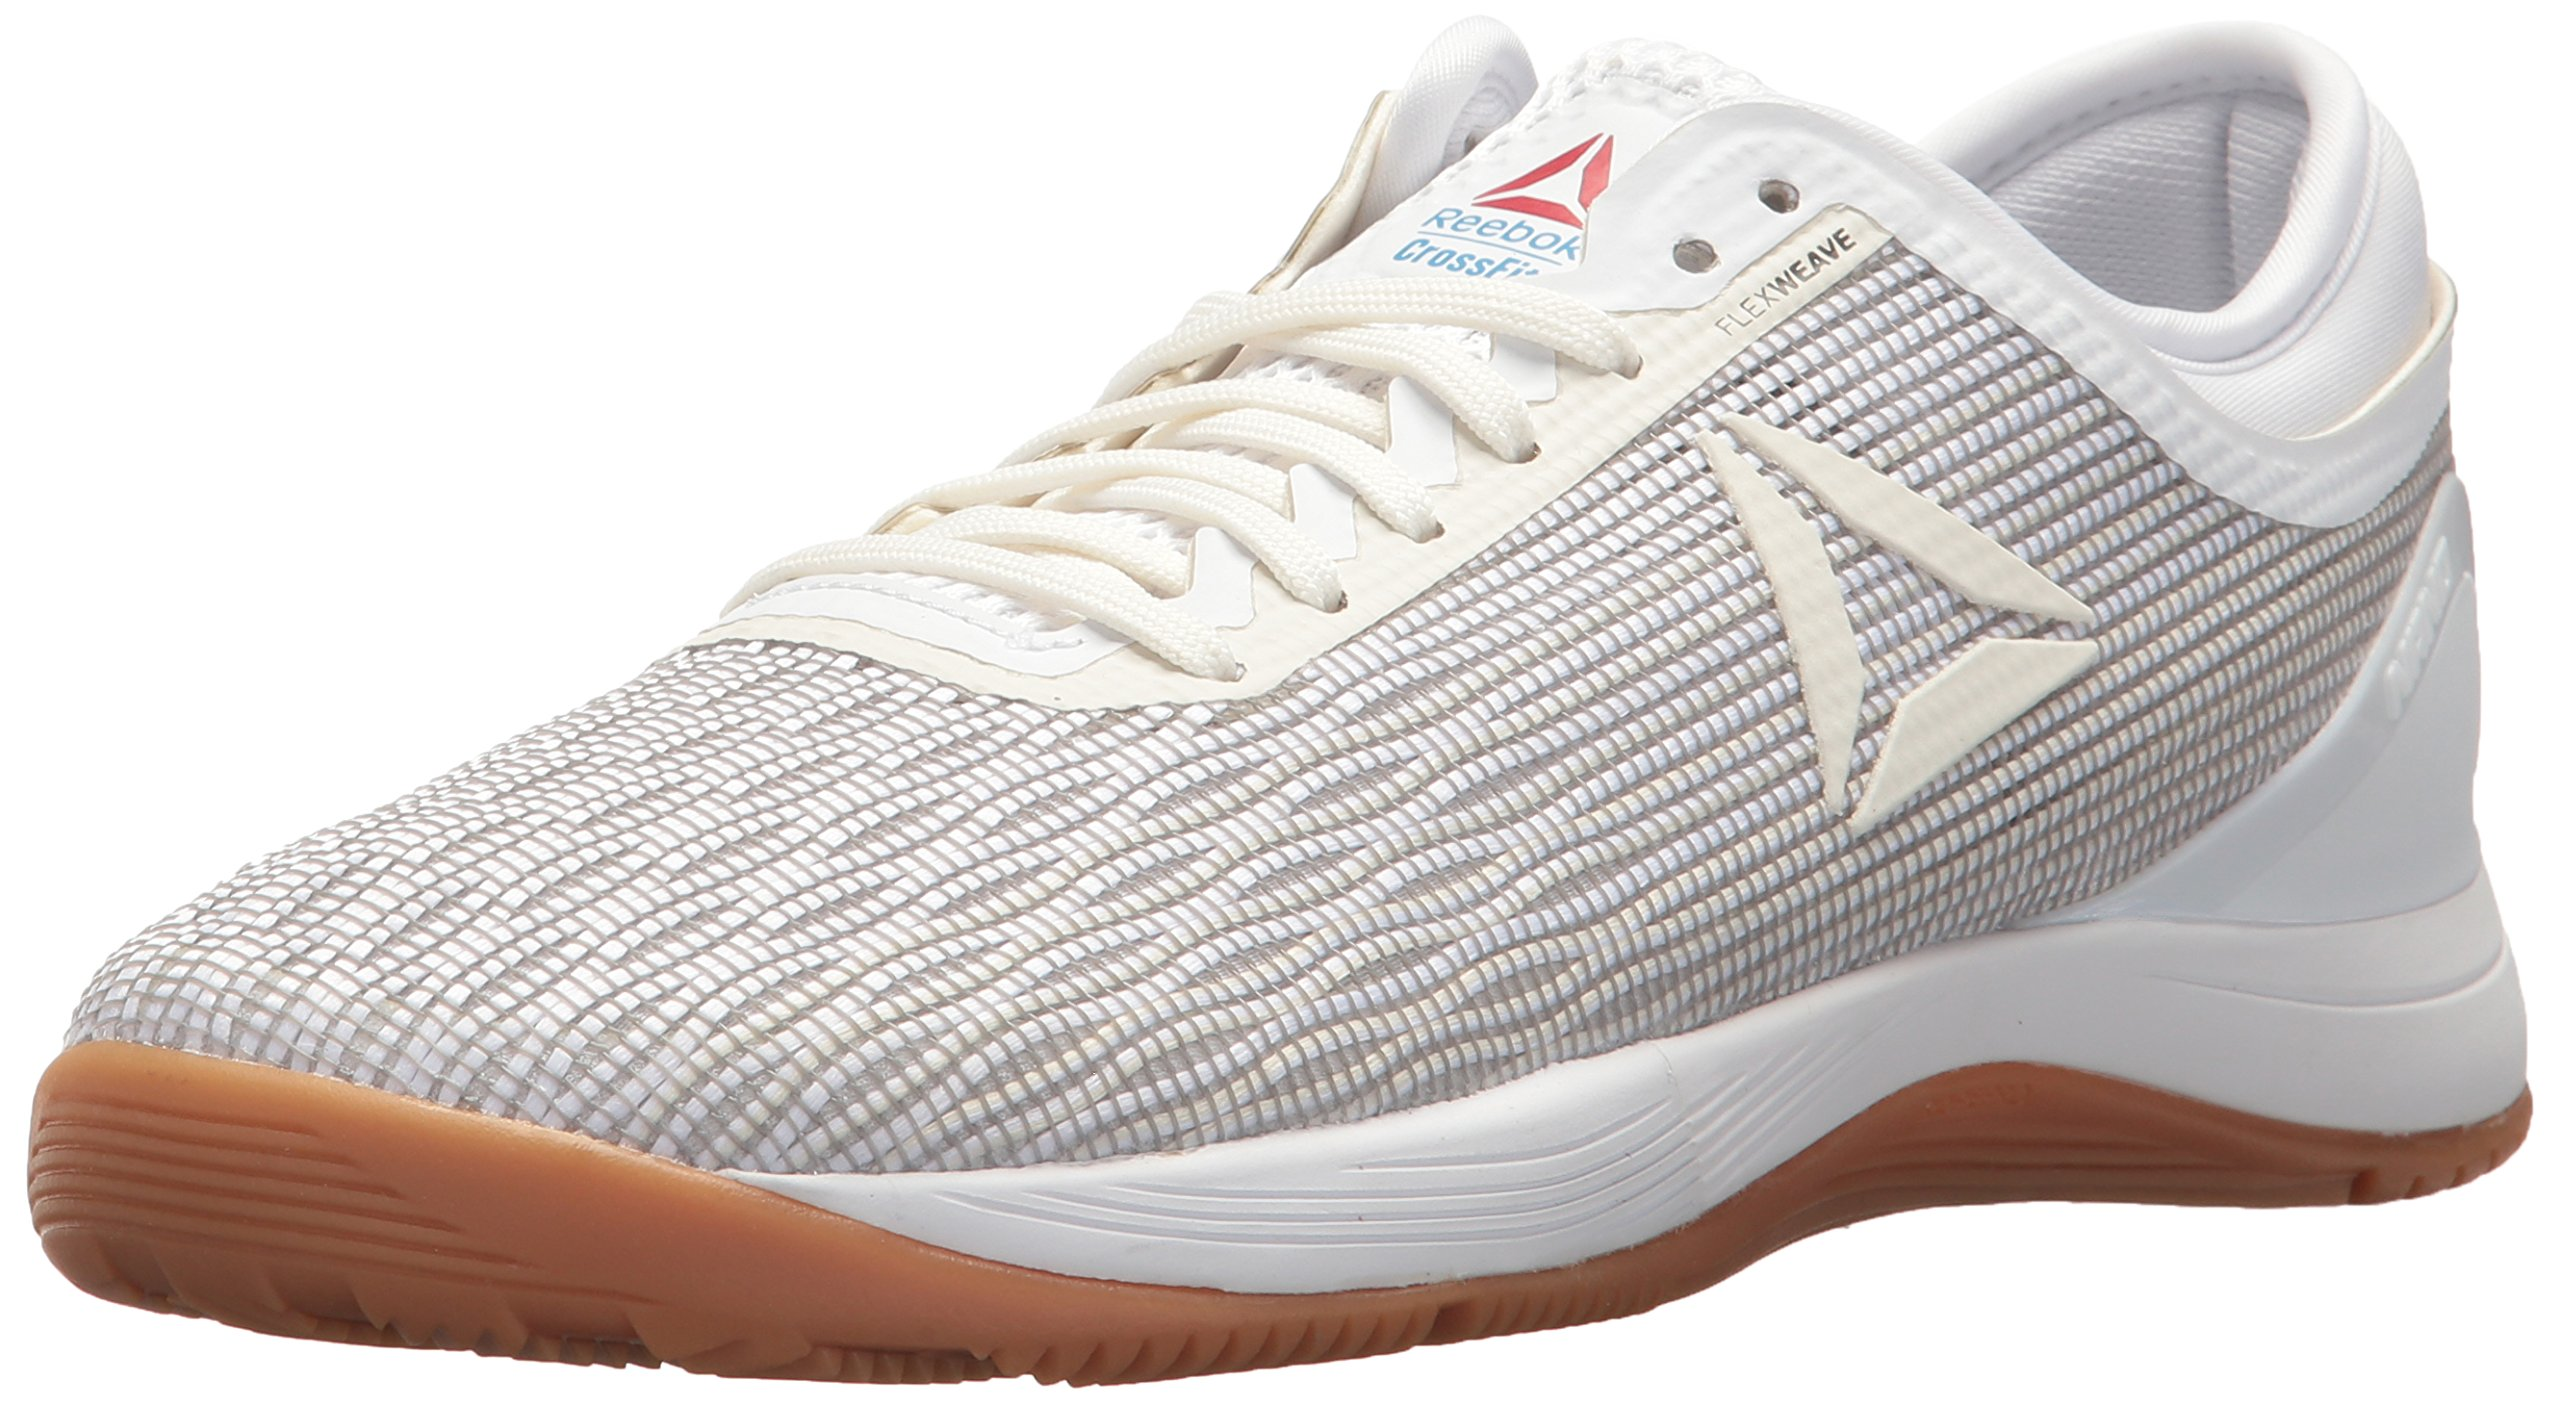 Reebok Women's CROSSFIT Nano 8.0 Flexweave Cross Trainer, White/Classic White/Excel, 7 M US